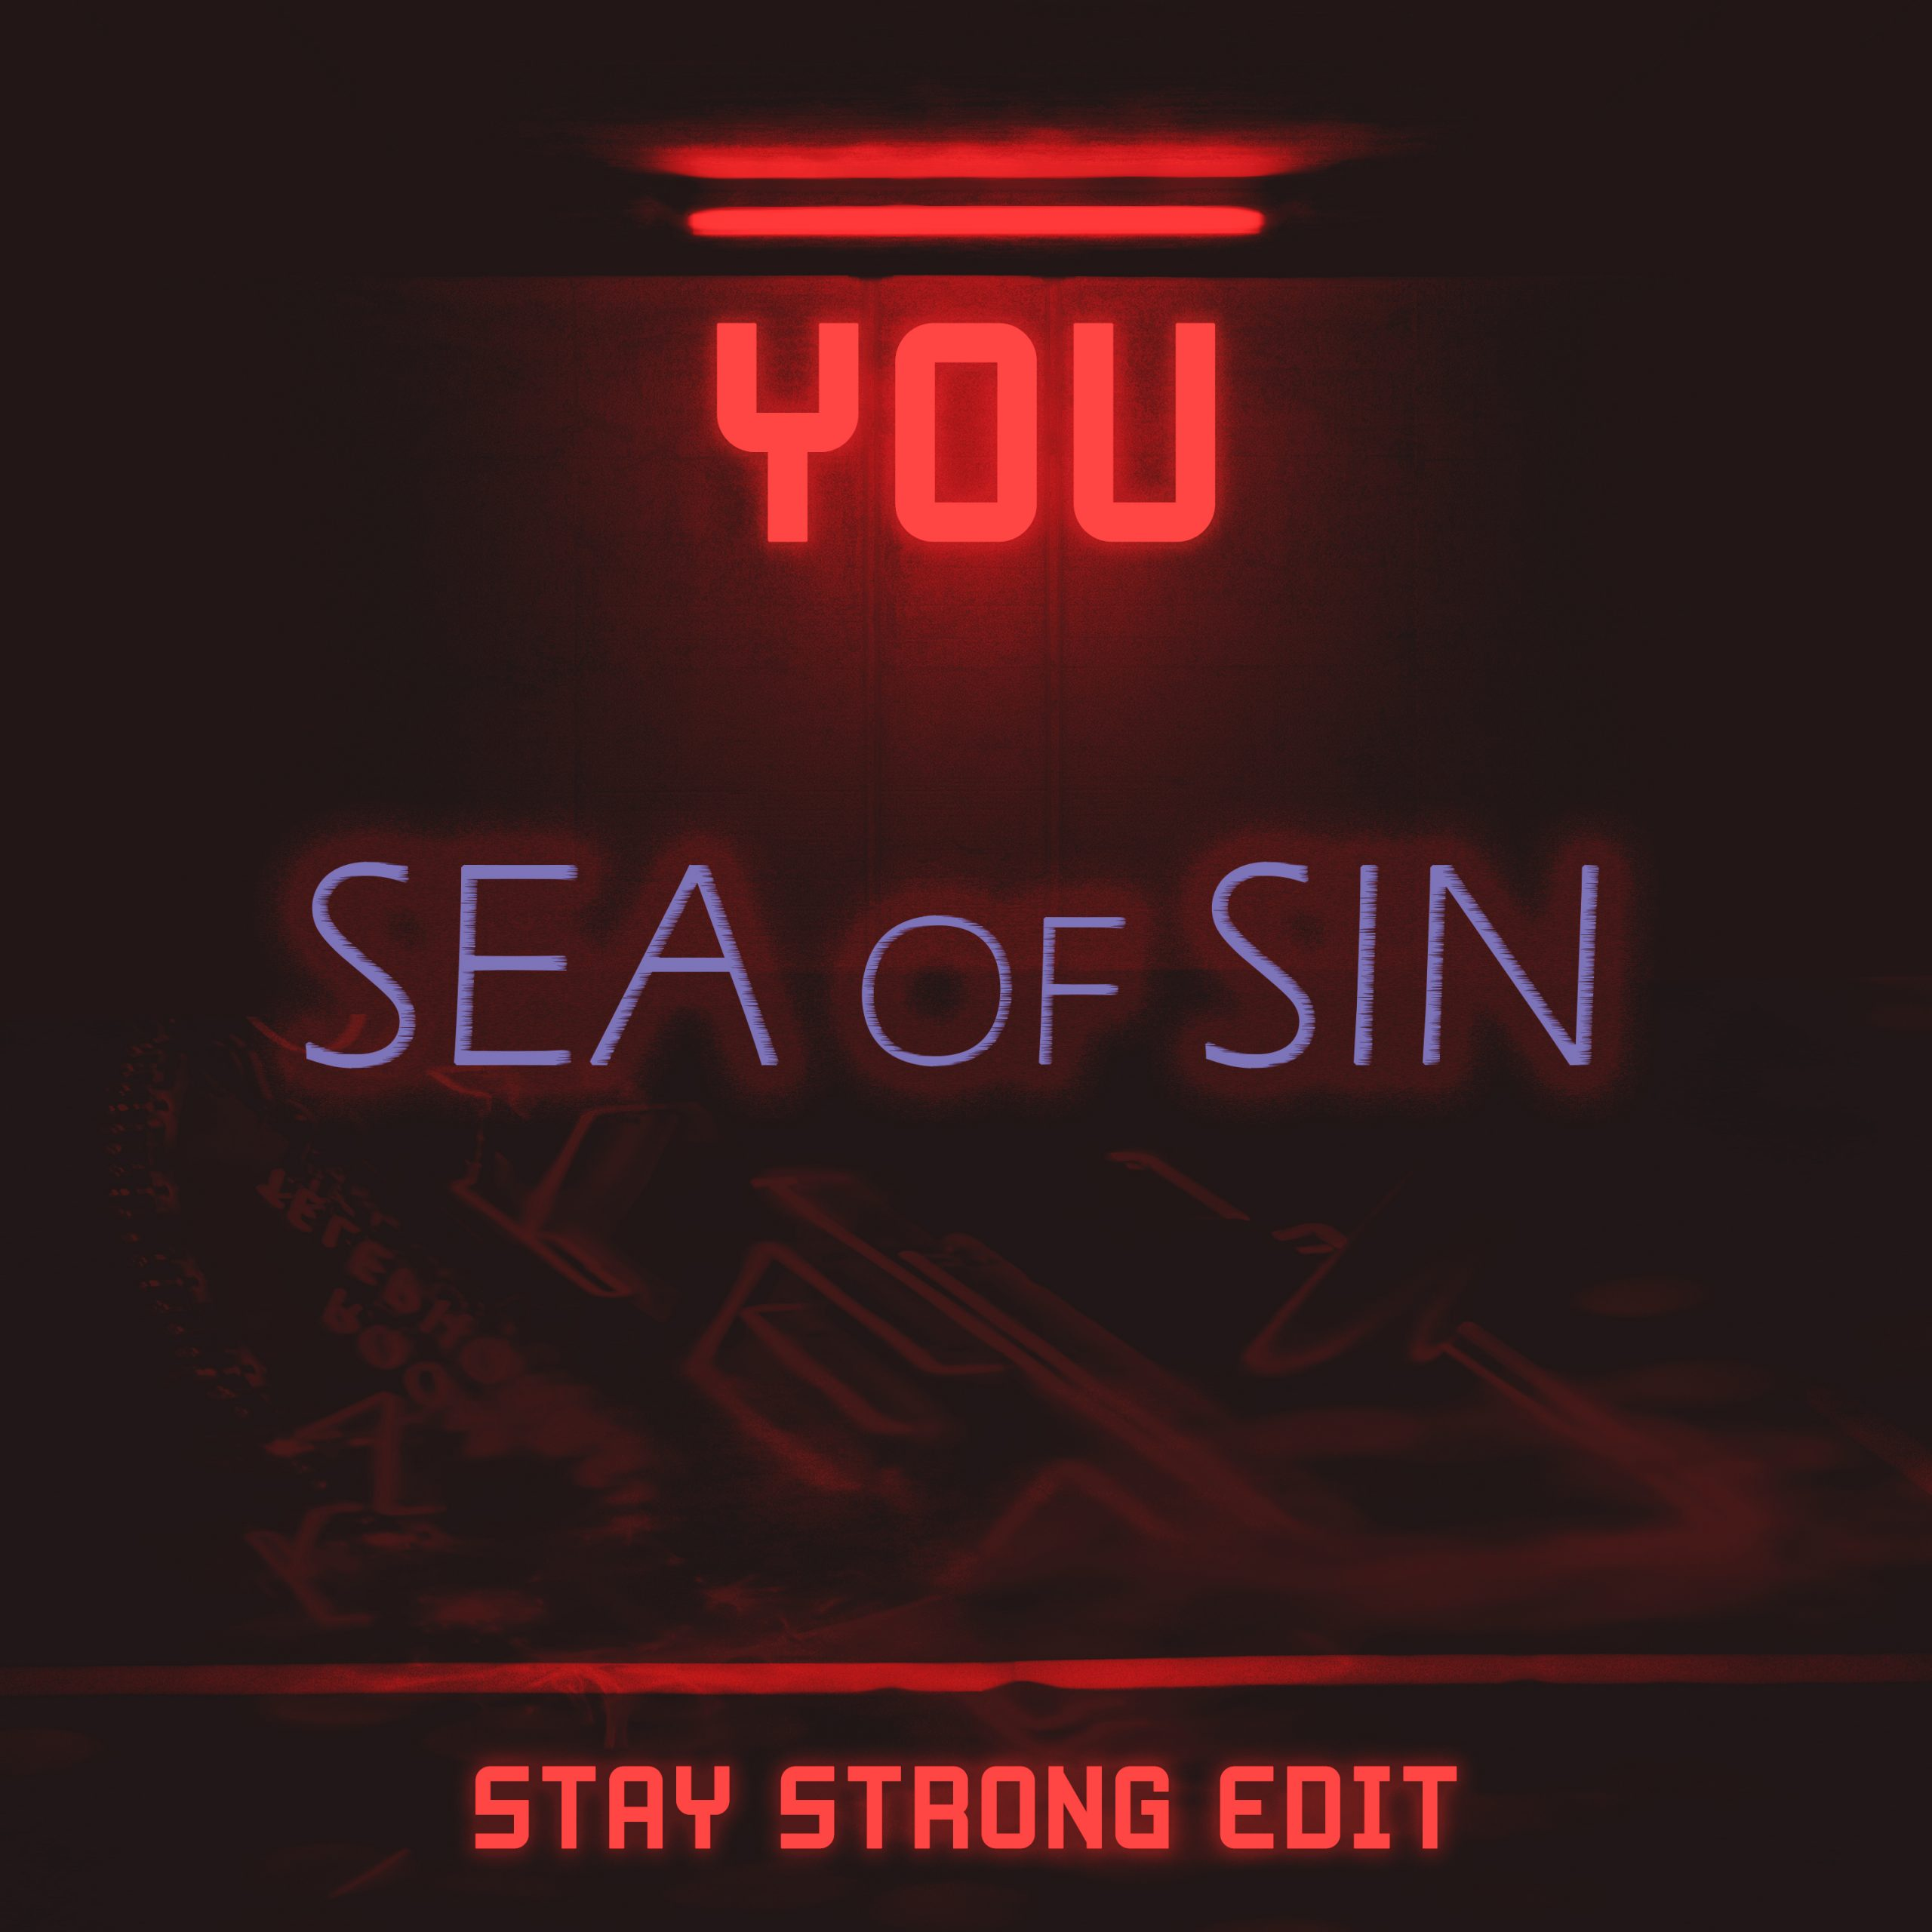 New Single: You (Stay Strong Edit)